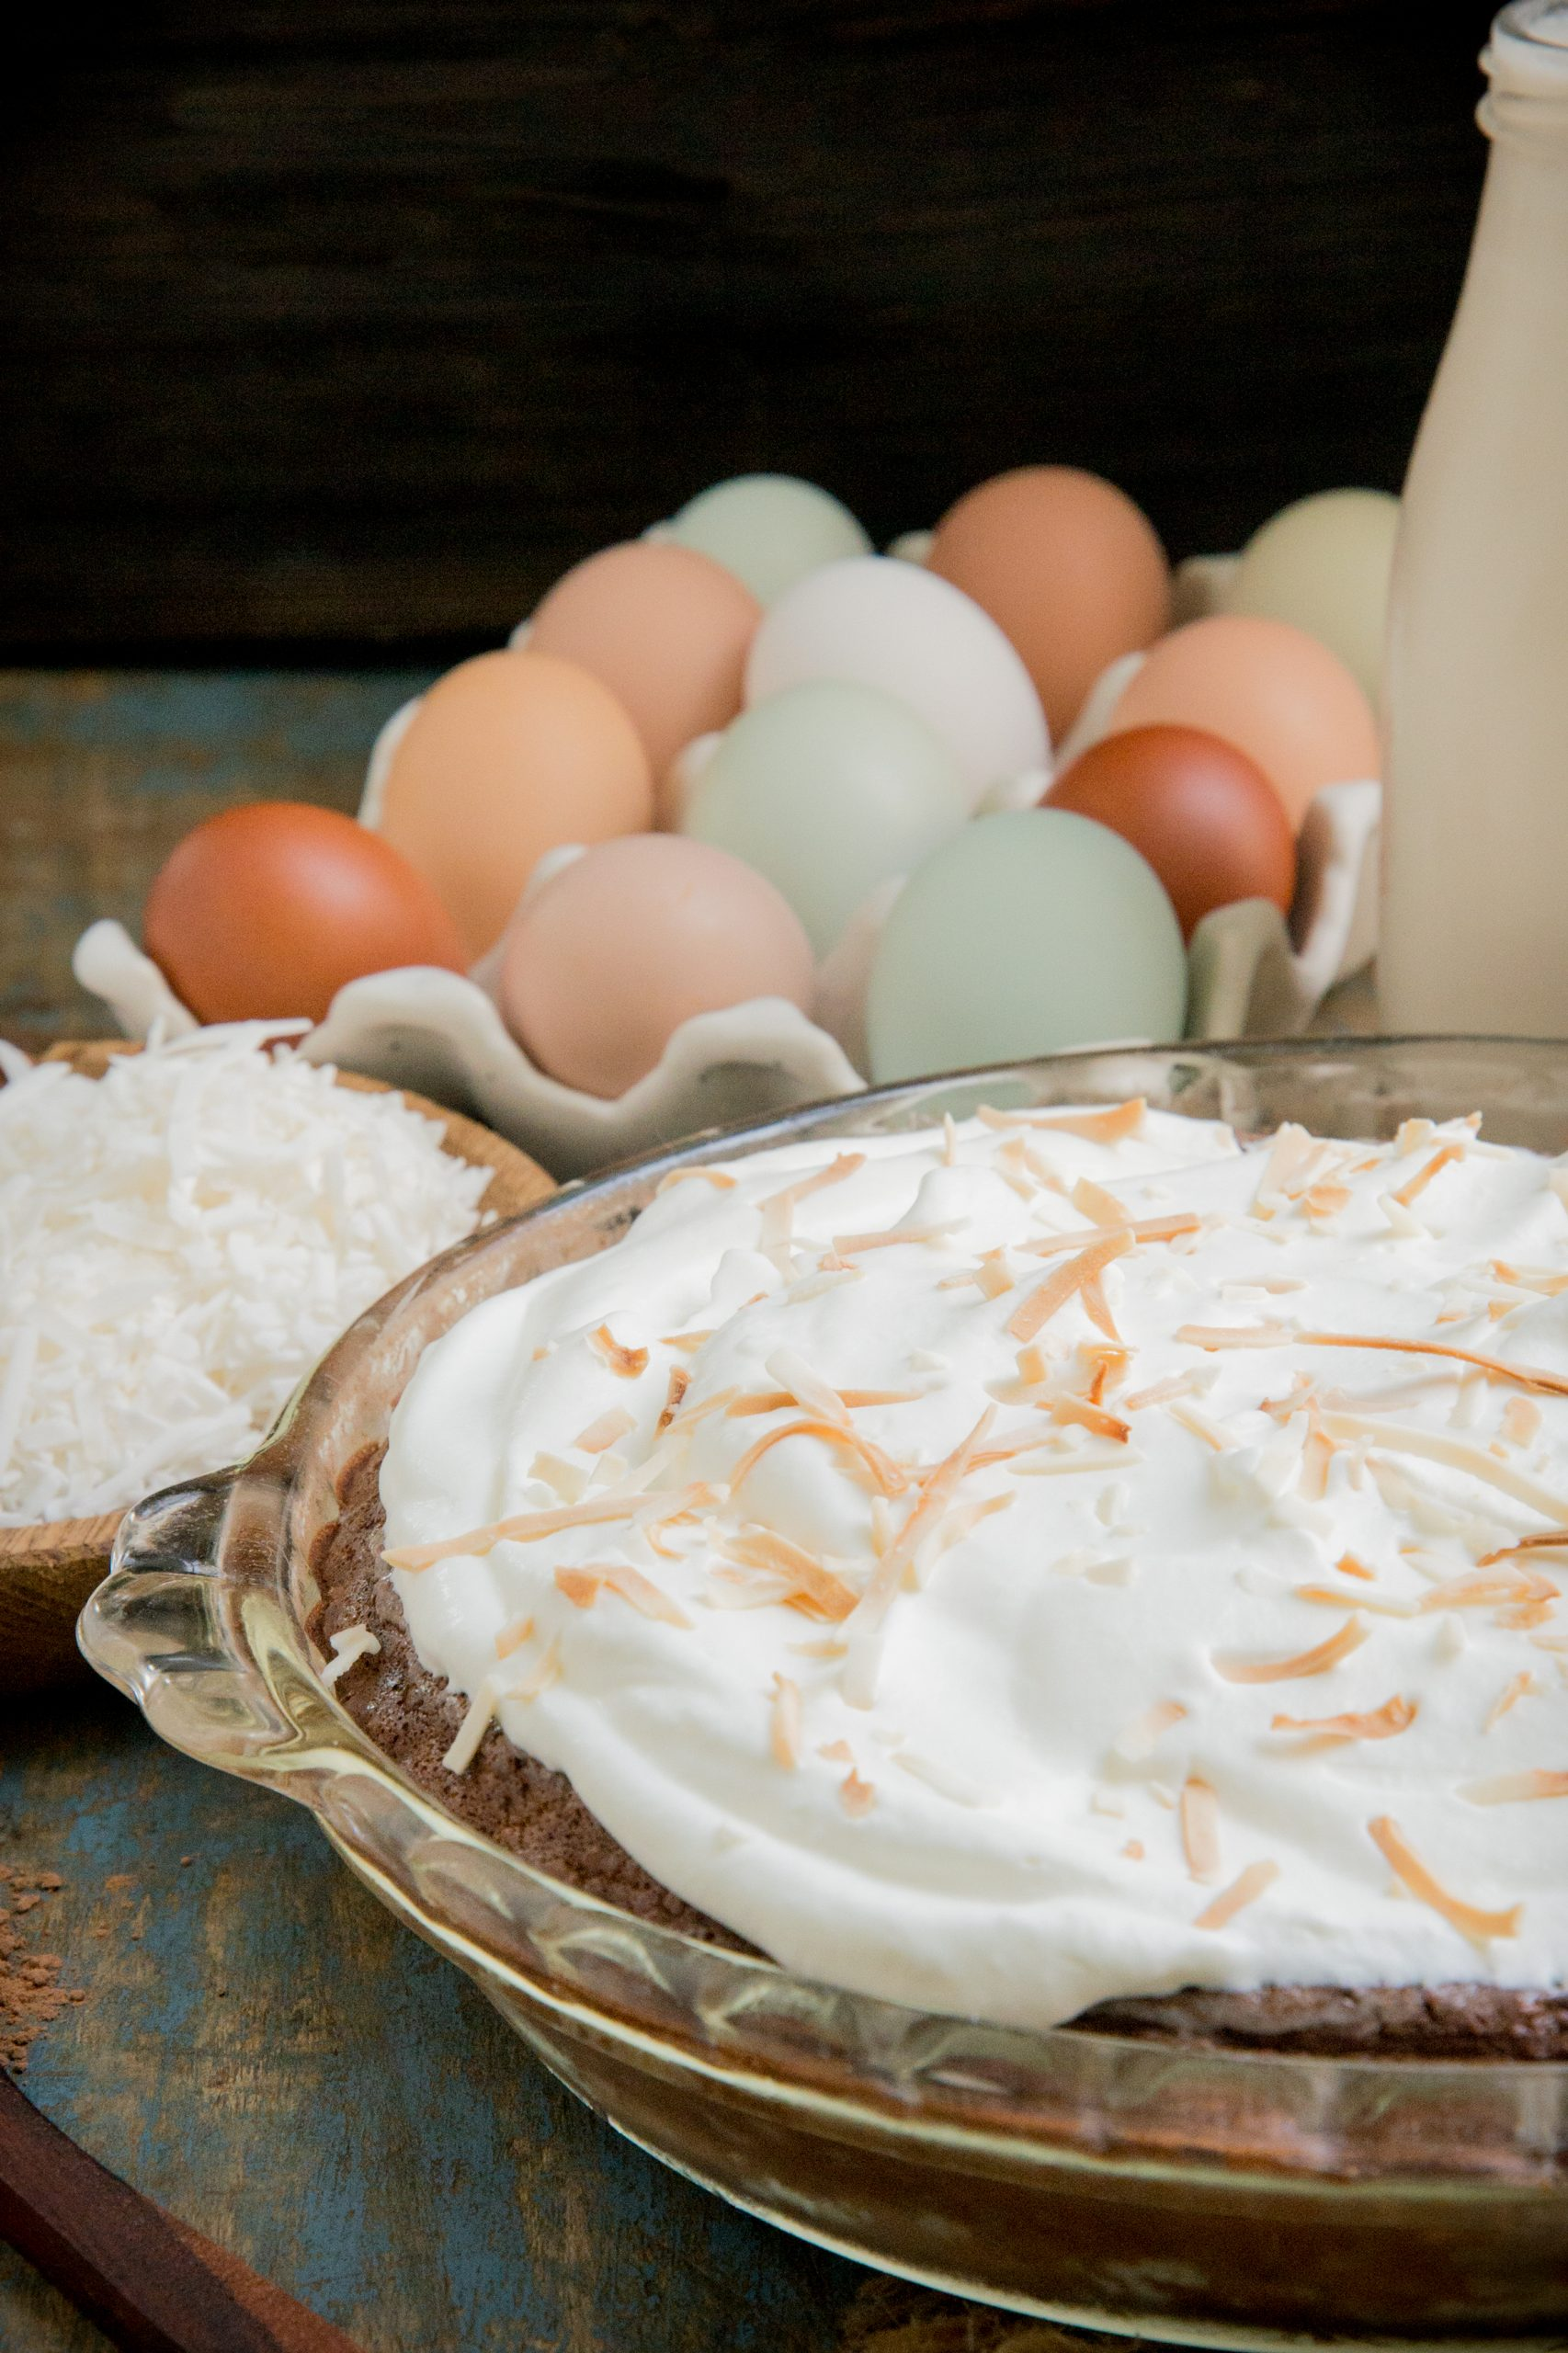 A photo of the whole pie with eggs behind.